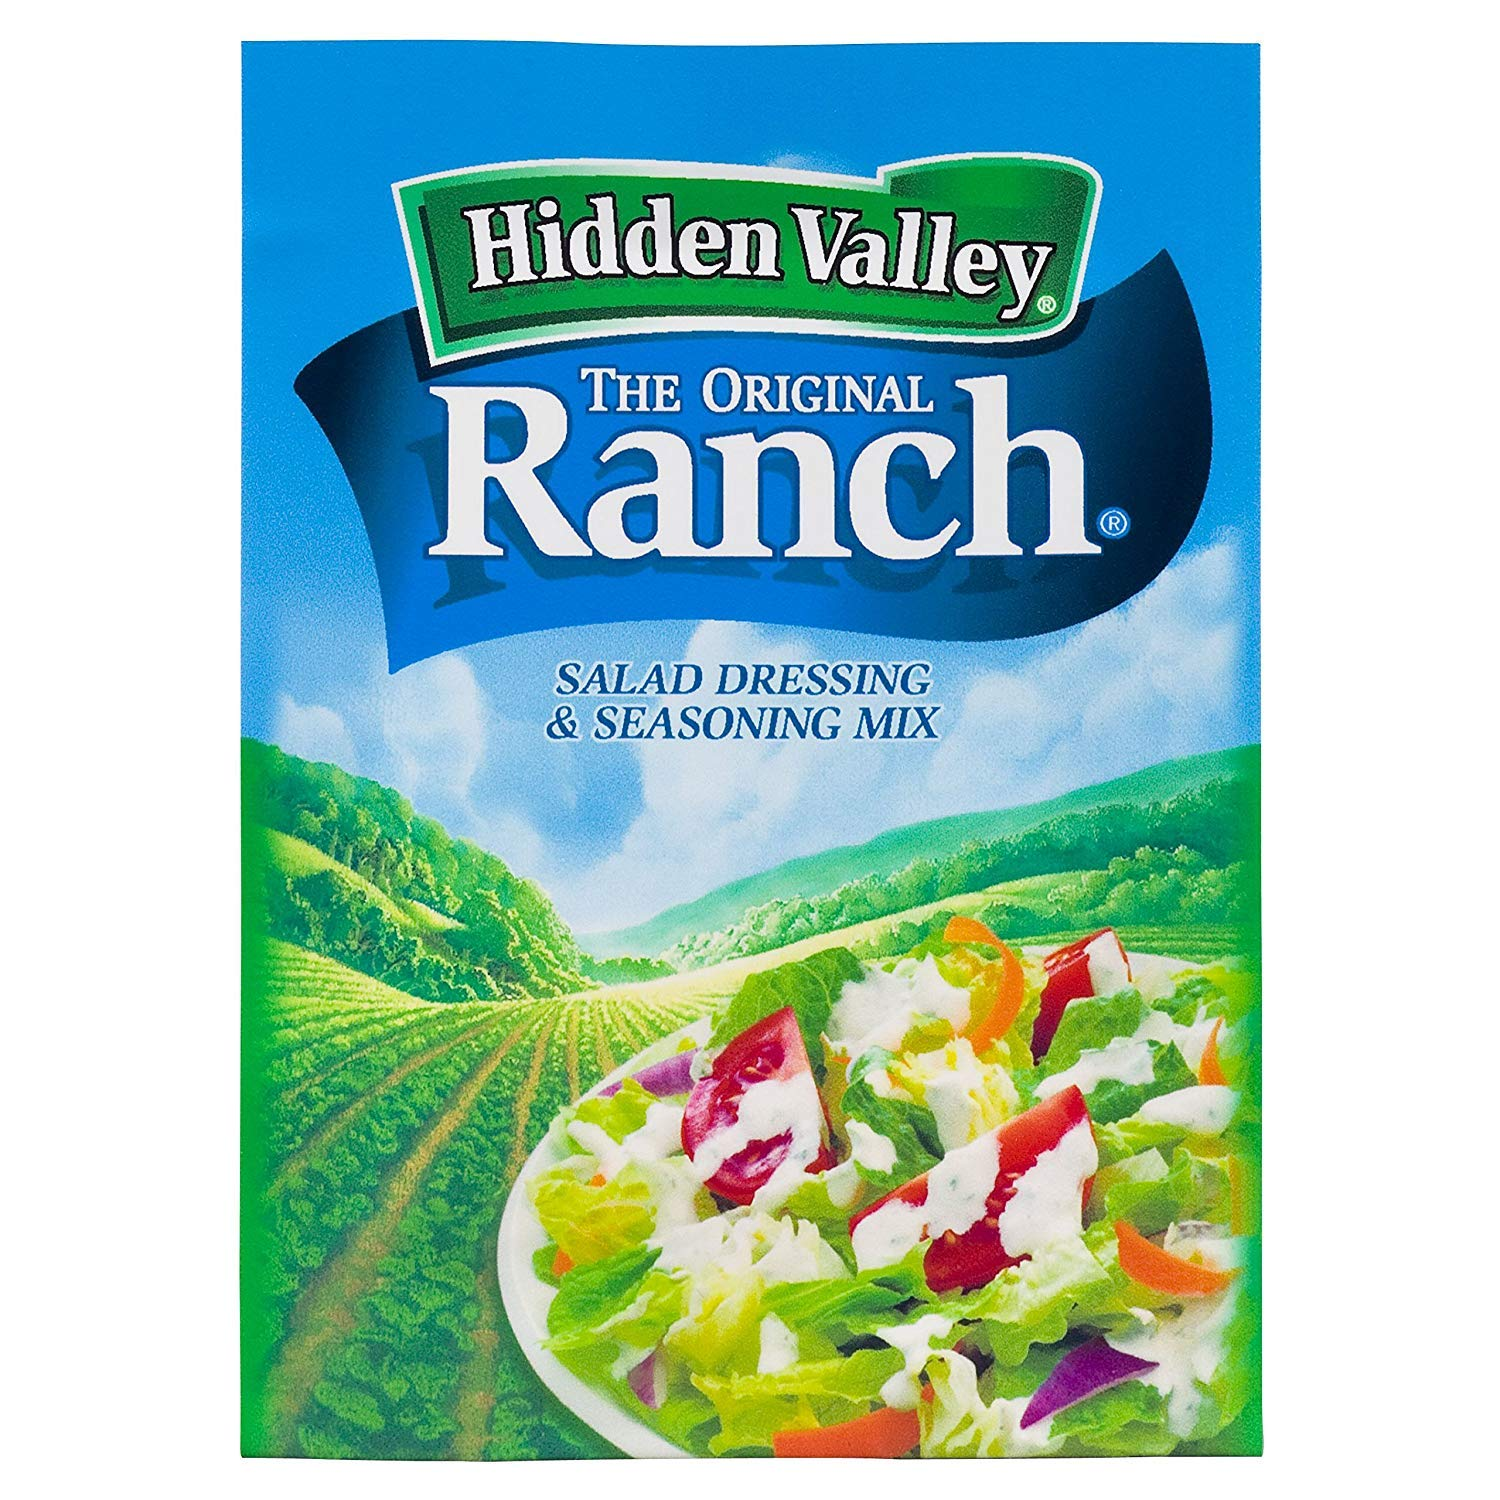 Hidden Valley Original Ranch Salad Dressing and Seasoning Mix, 1.0 Ounce (Pack of 24) by Hidden Valley